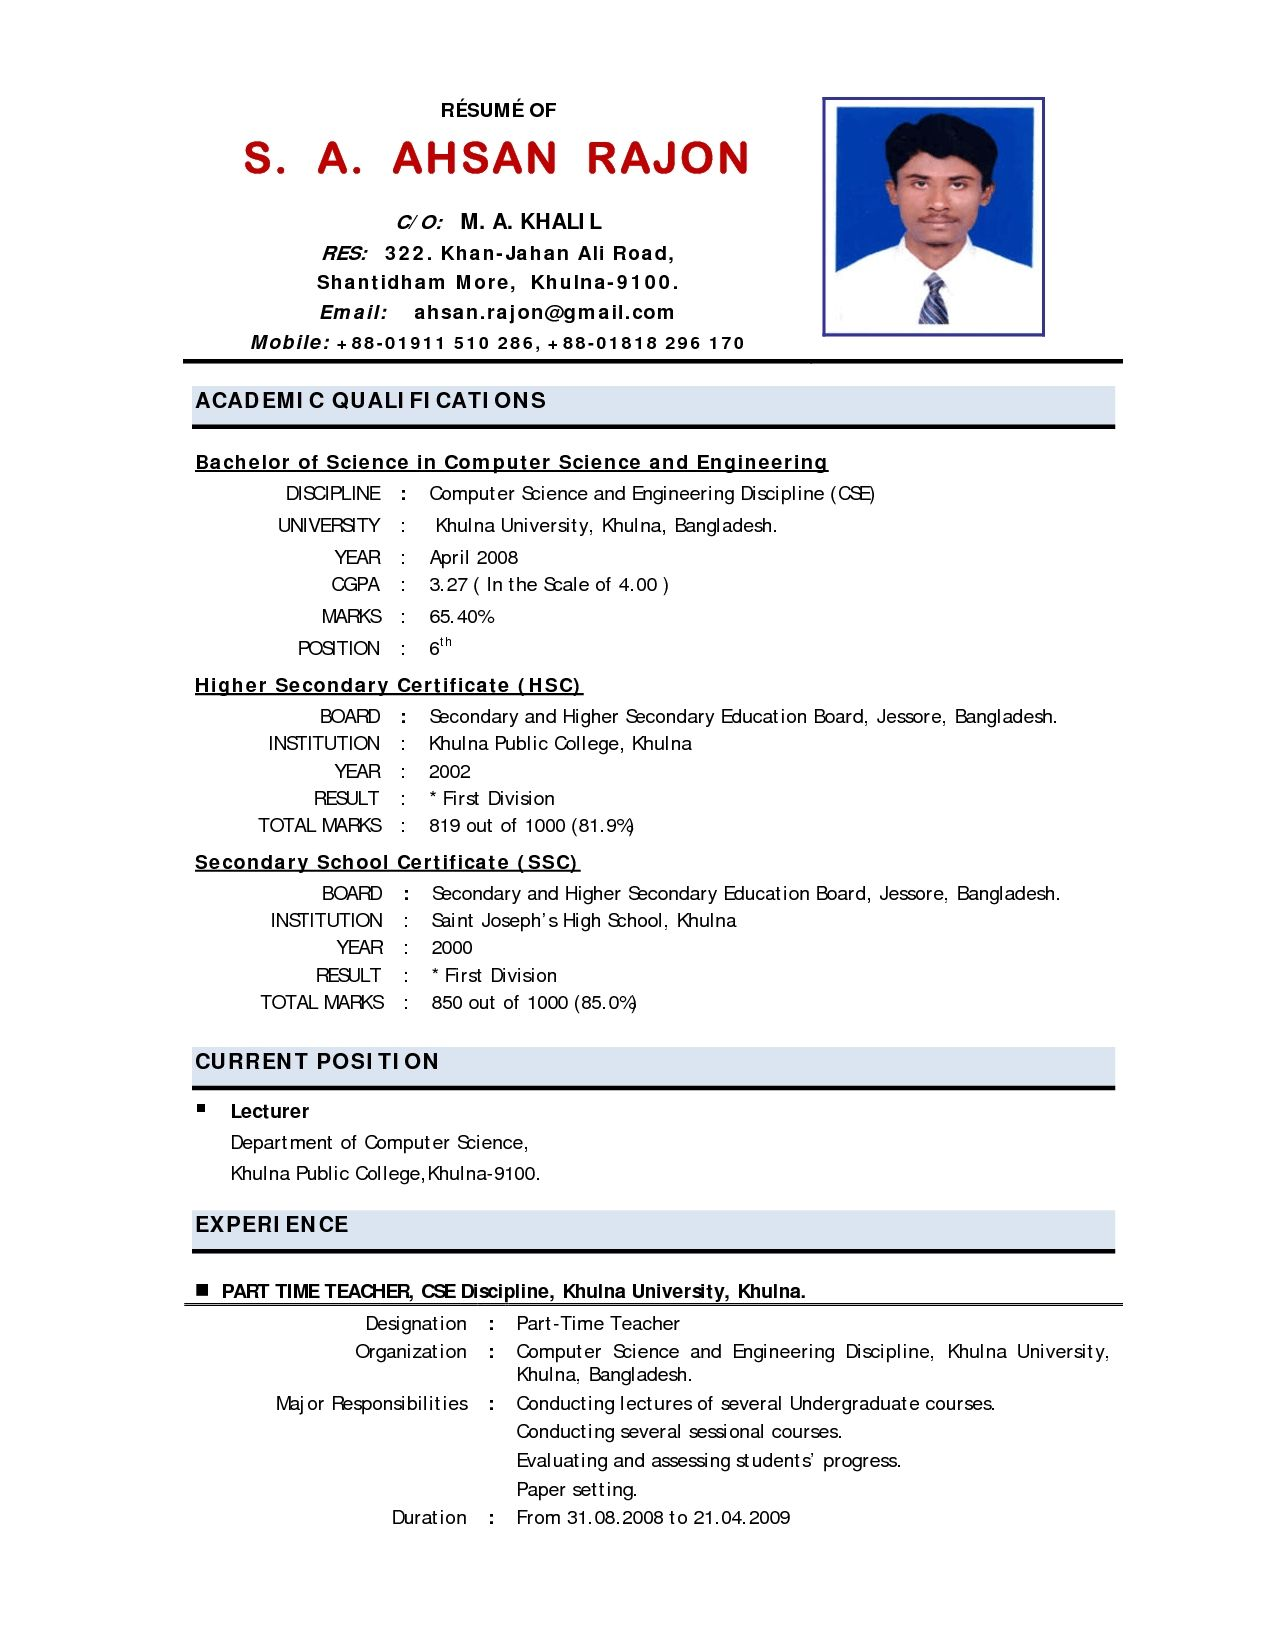 Sample Resume For Experienced Lecturer In Computer Science Free Resume Templates Work Example Social Sample Template